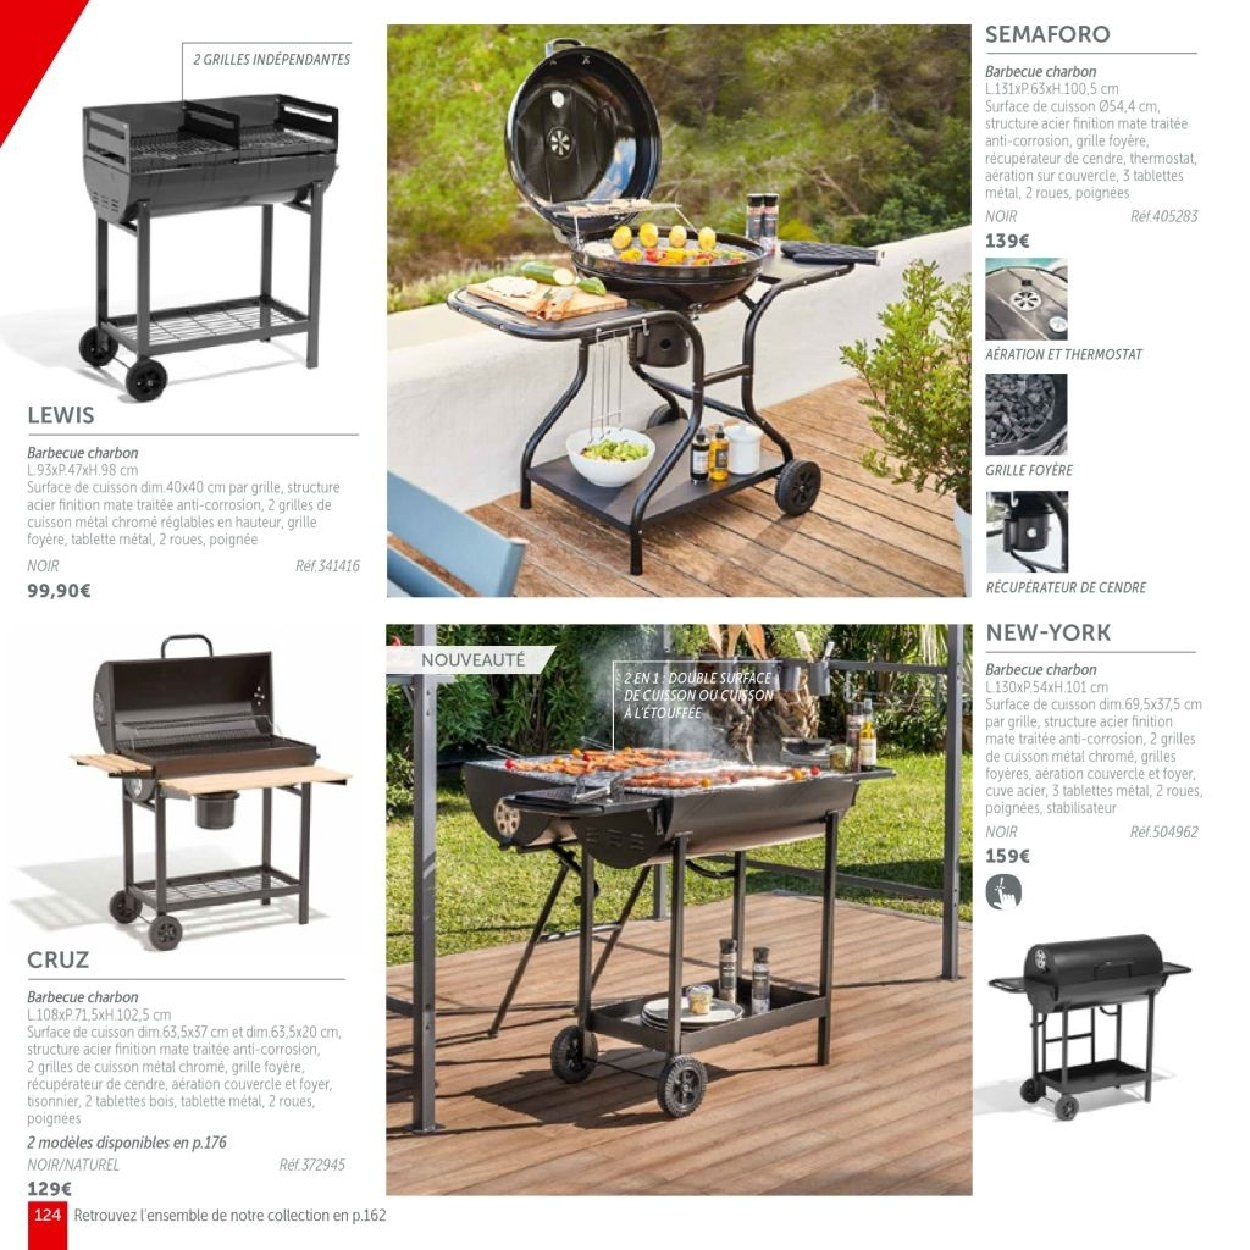 barbecue charbon new york noir 2 roues